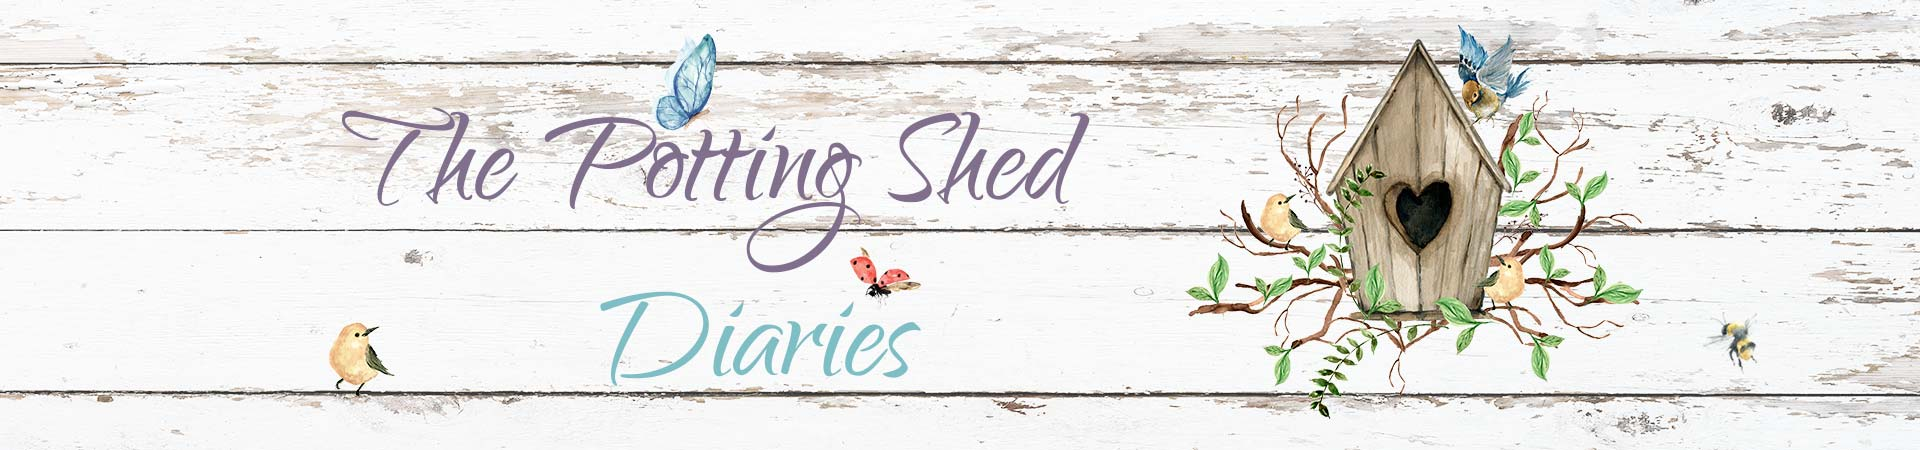 The Potting Shed Diaries header